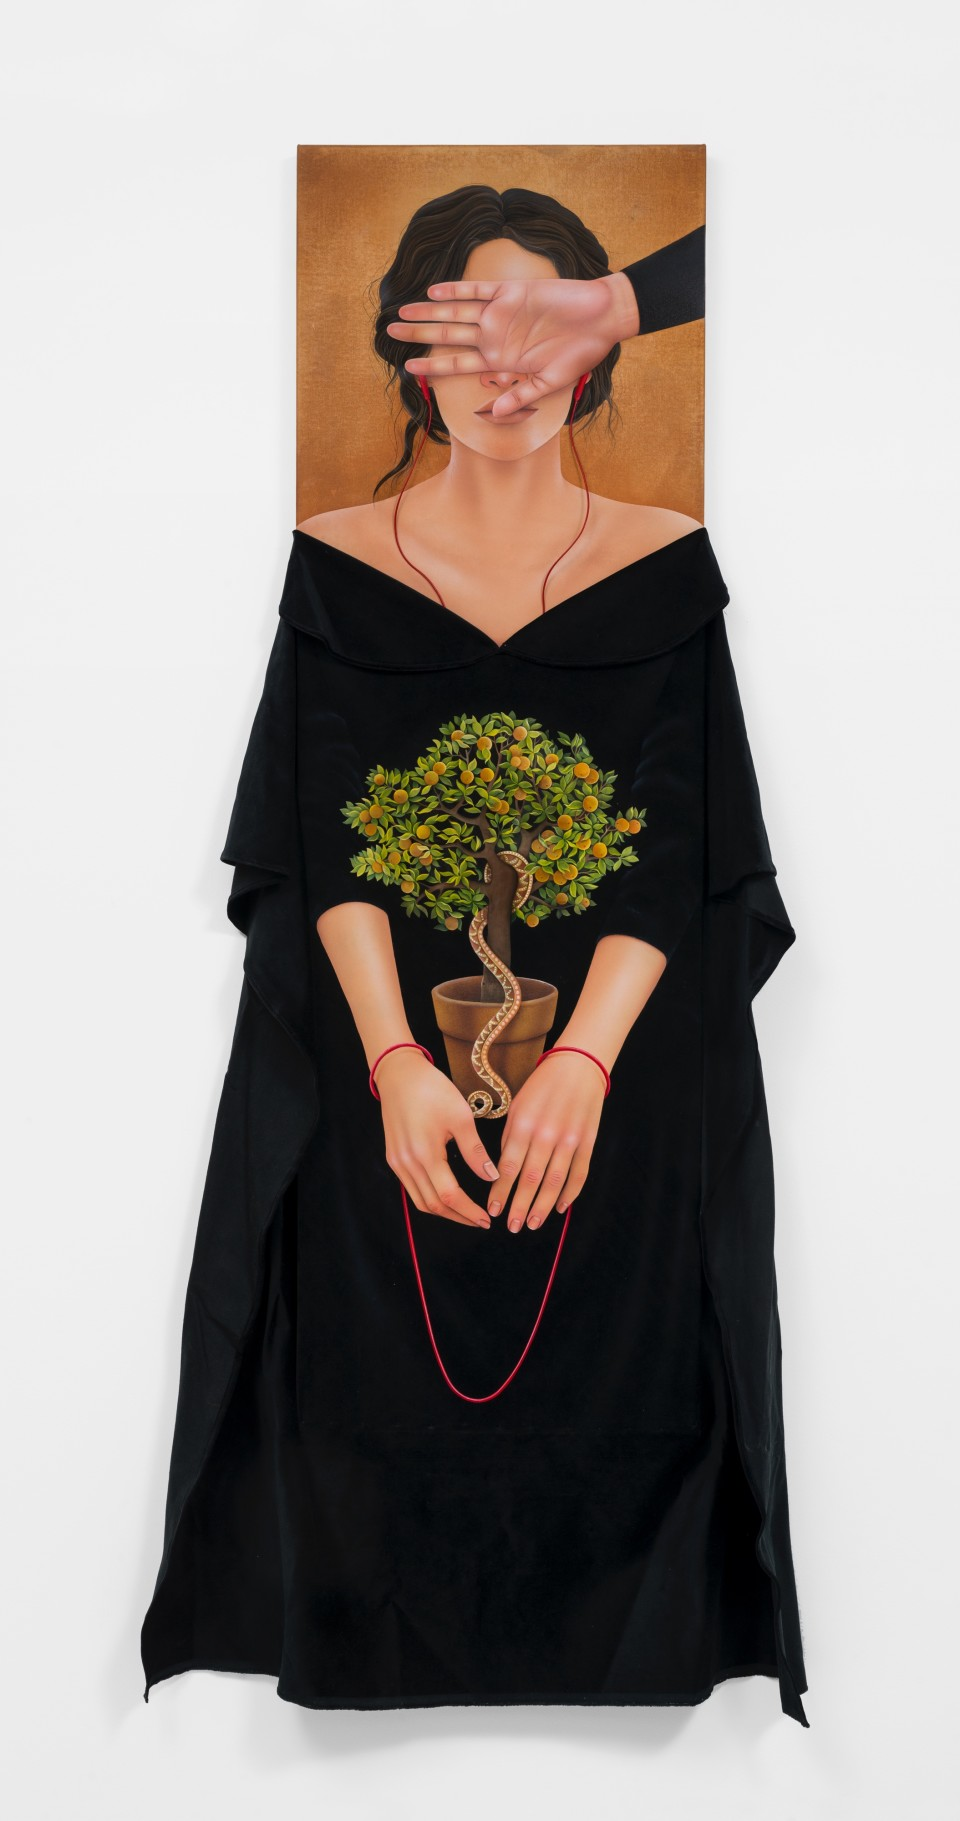 Image: Arghavan Khosravi  Eye Witness, 2019  signed and dated verso  acrylic on canvas and velvet textile mounted on shaped wood panels, leather cord  70 x 39 inches (177.8 x 99.1 cm)